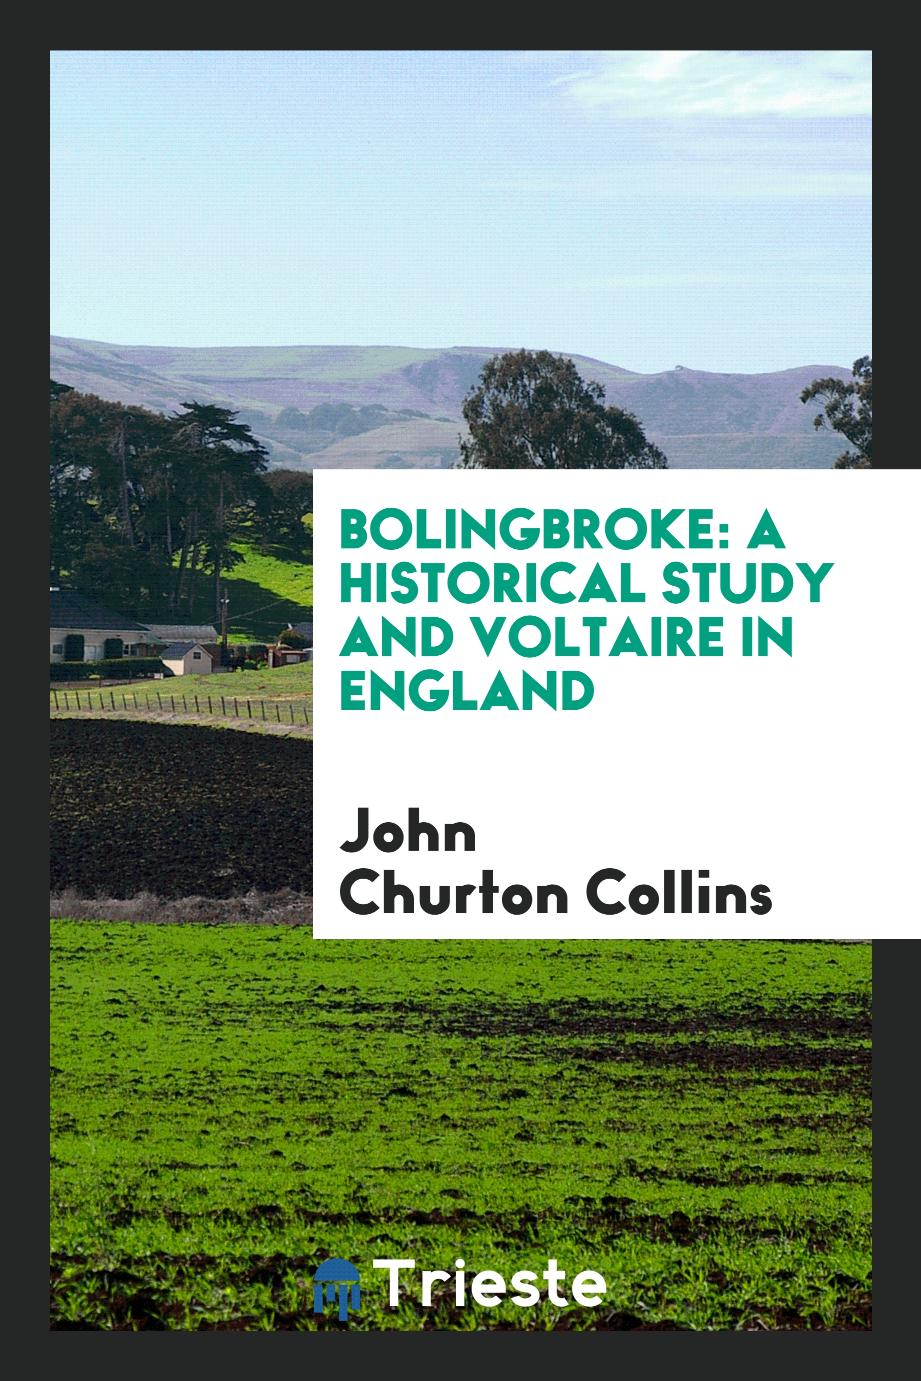 Bolingbroke: A Historical Study and Voltaire in England